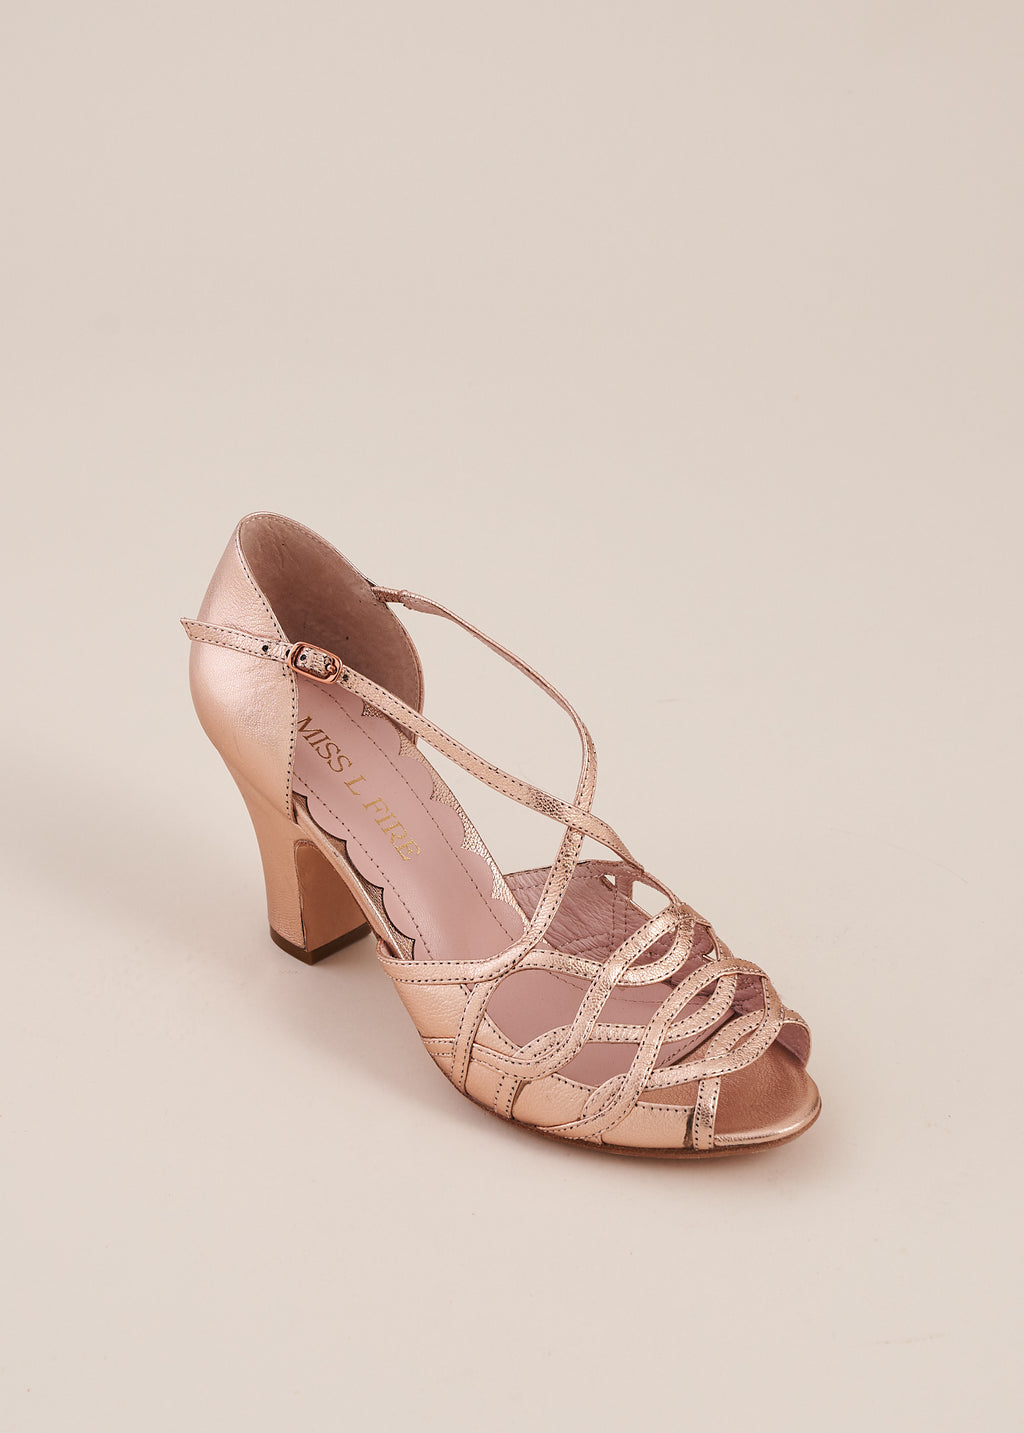 Adele by Miss L Fire  in rose gold metallic leather is a strappy two part sandal with 3 inch heel. Perfect bridesmaid shoe. Ethically made.